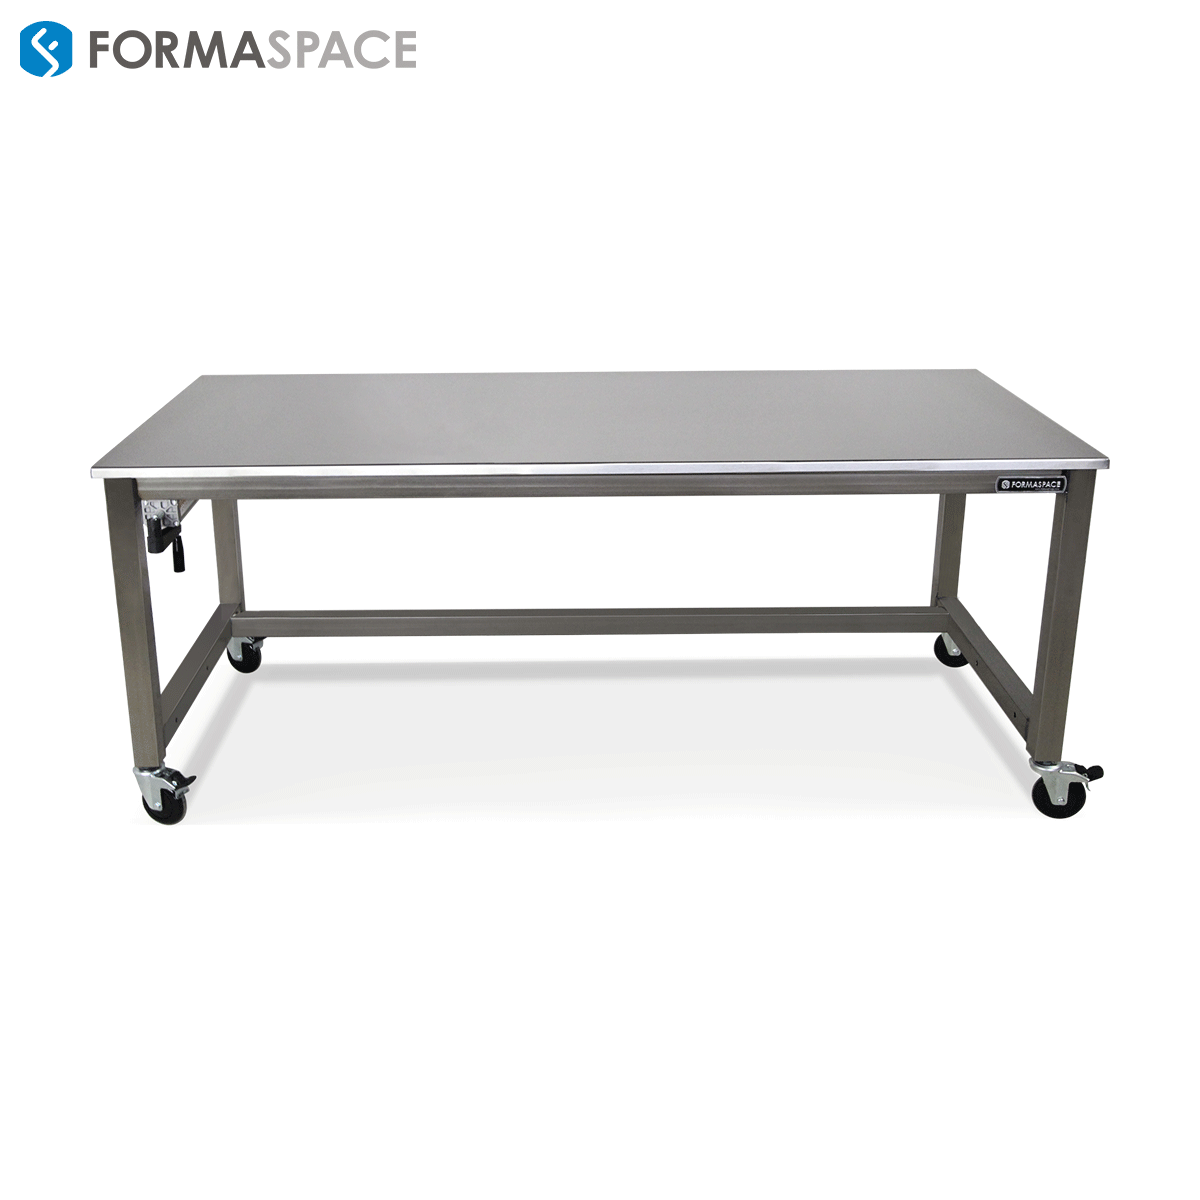 Craftsman Work Benches | Mechanics Work Bench | Metal Workbench